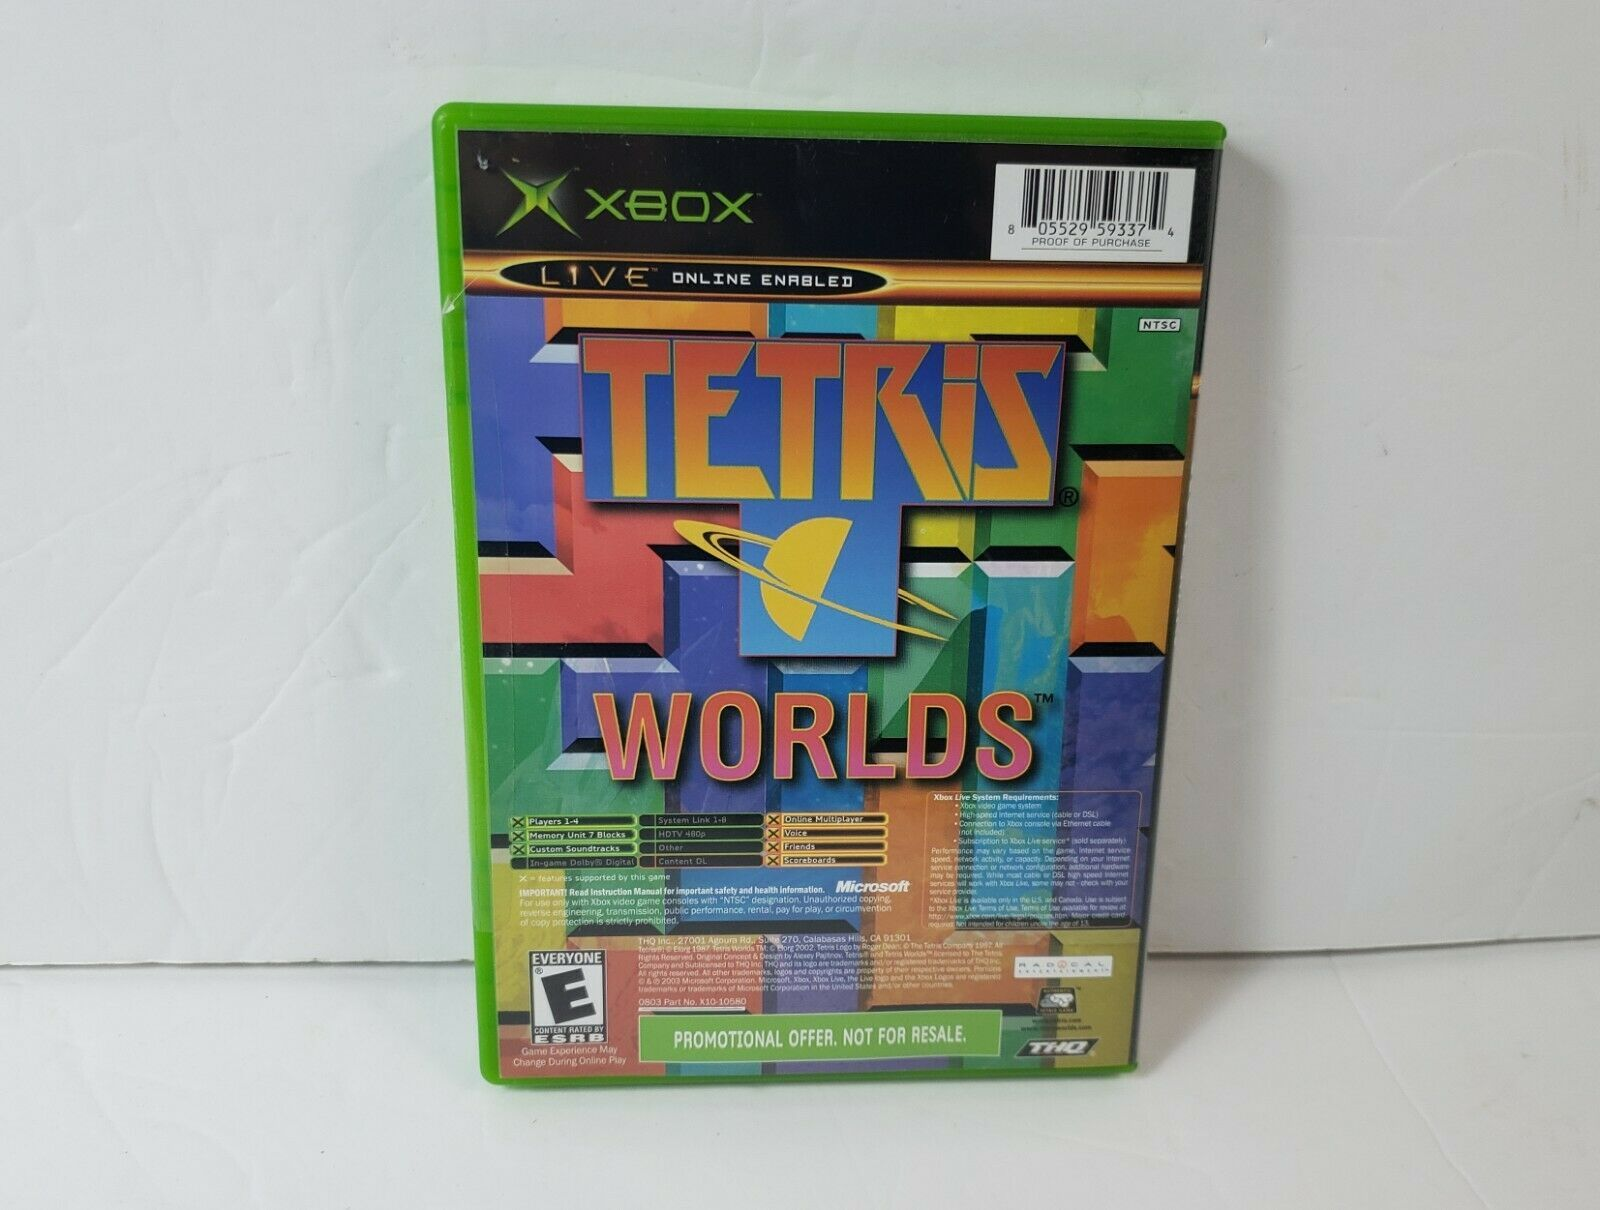 Star Wars: The Clone Wars / Tetris Worlds (Microsoft Xbox, 2003) Not for Resale image 2